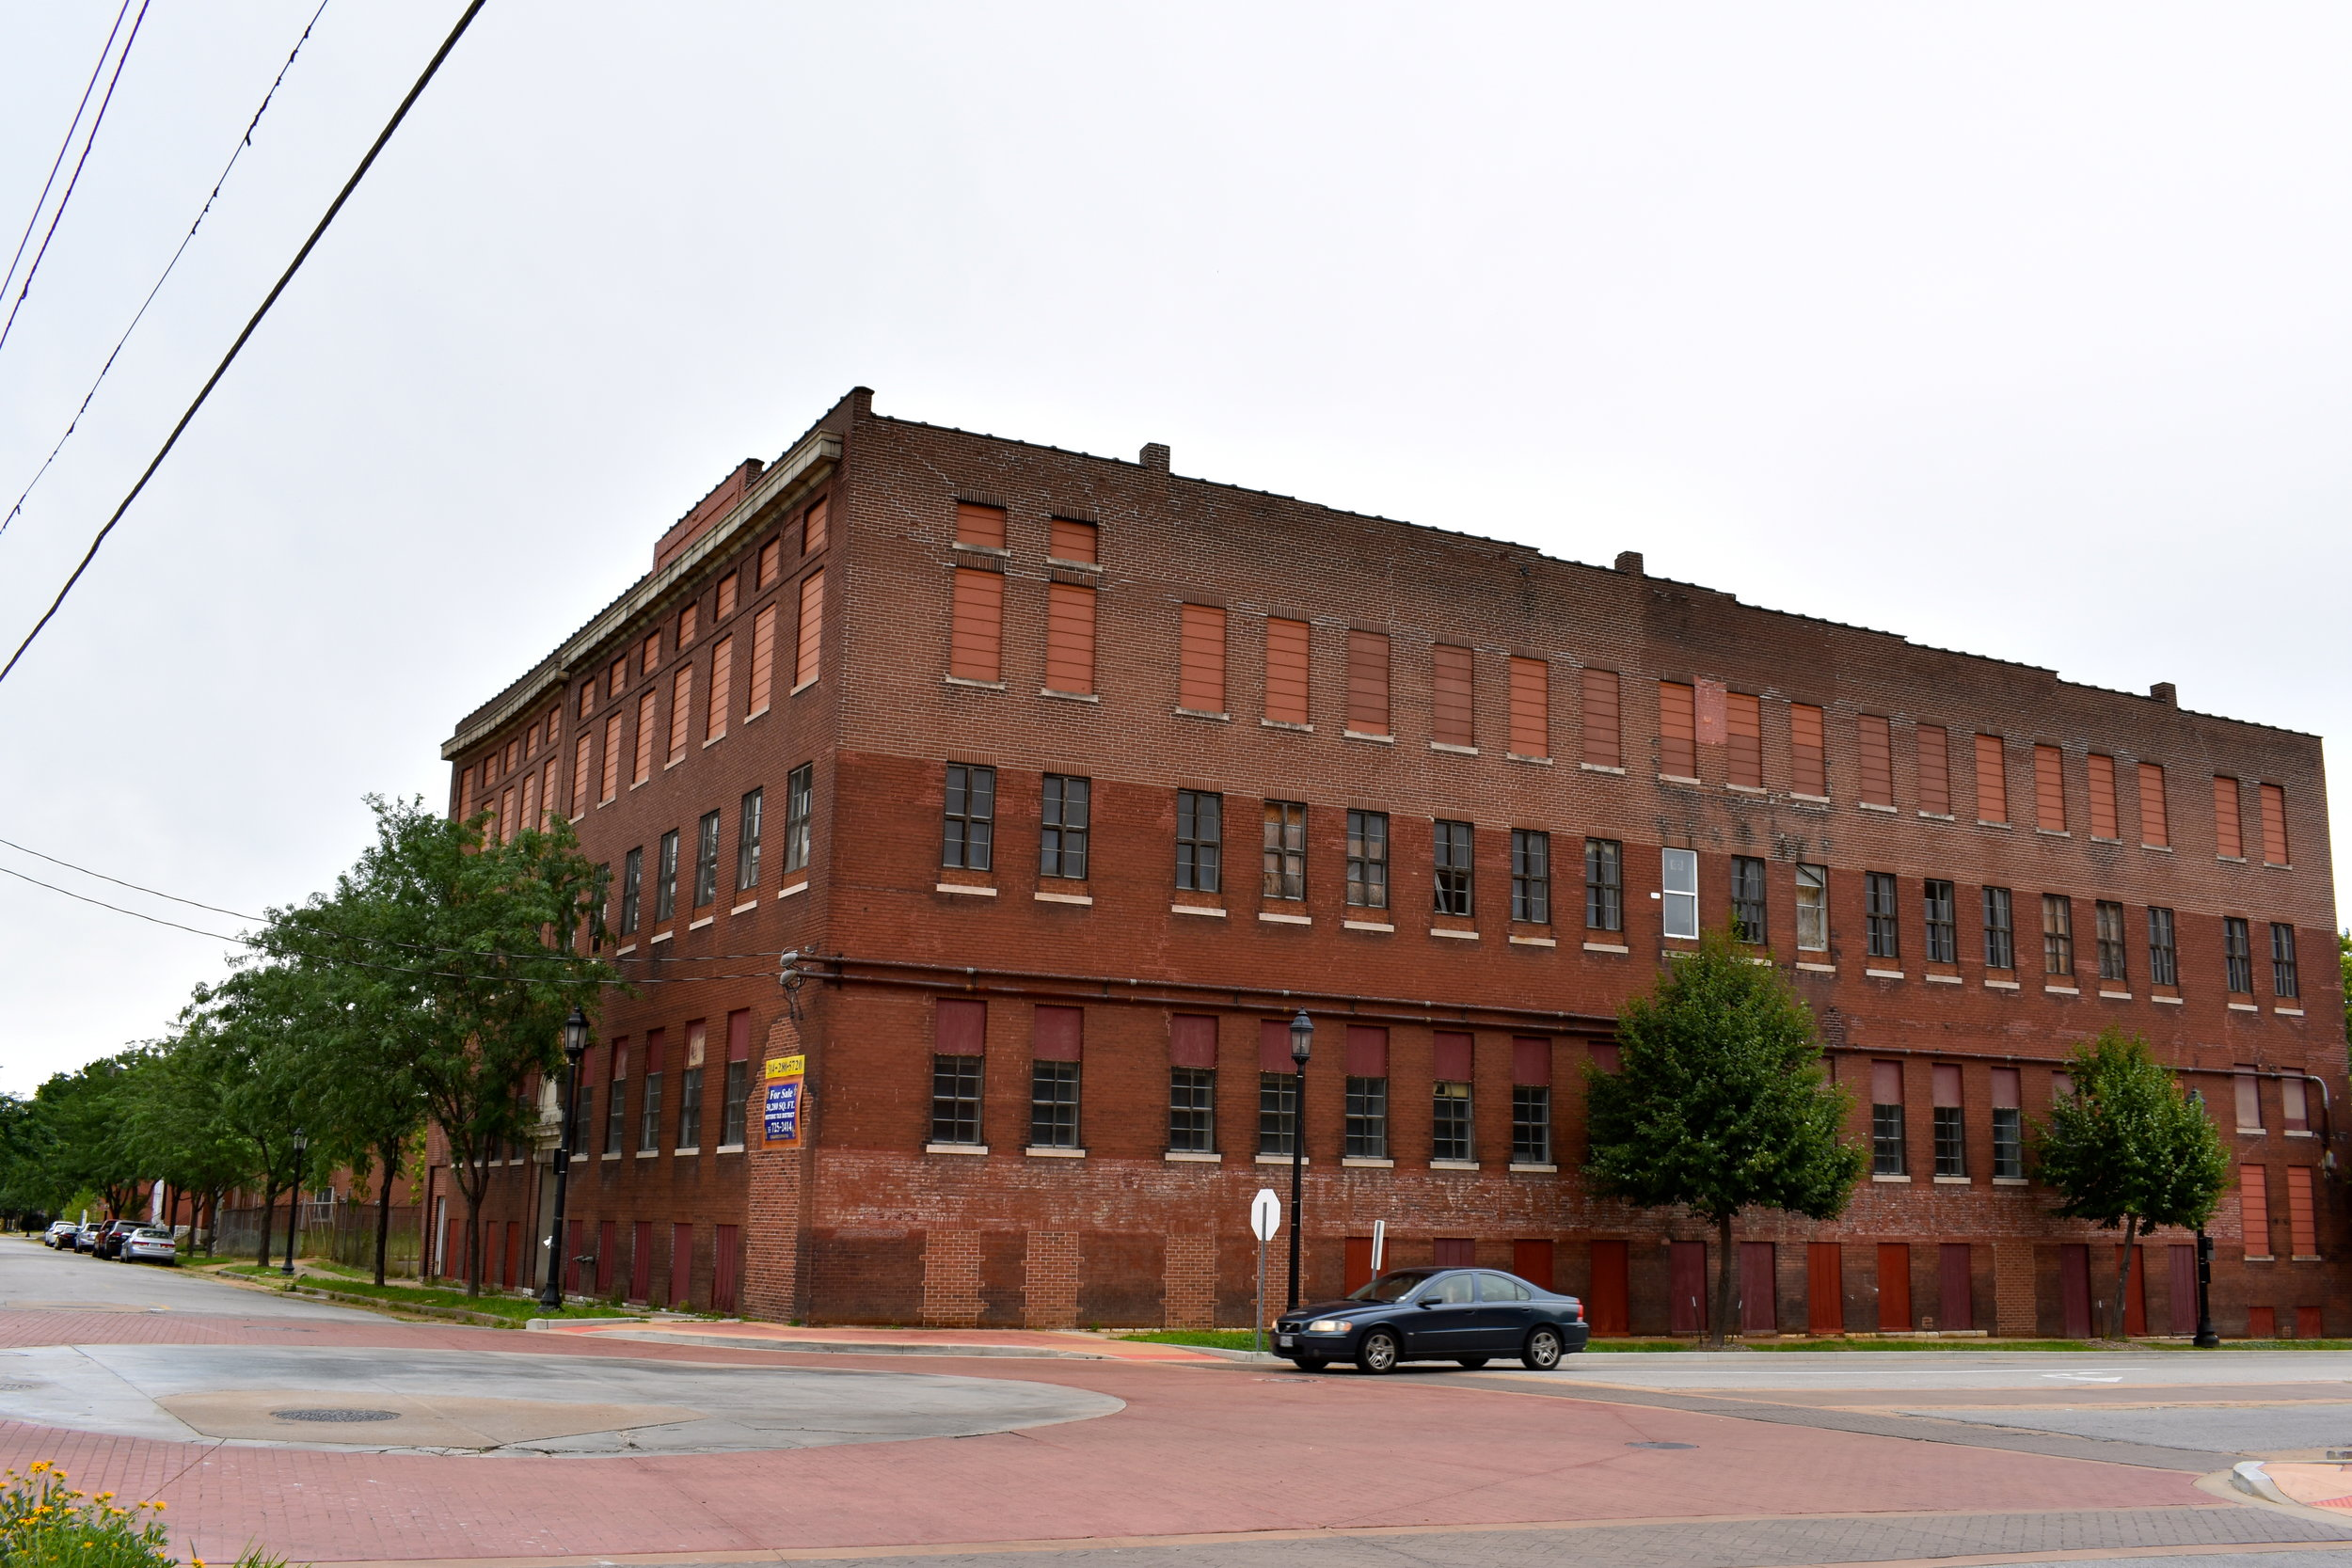 Bouras Mop Factory building sits idle at Park Avenue and Dolman Street